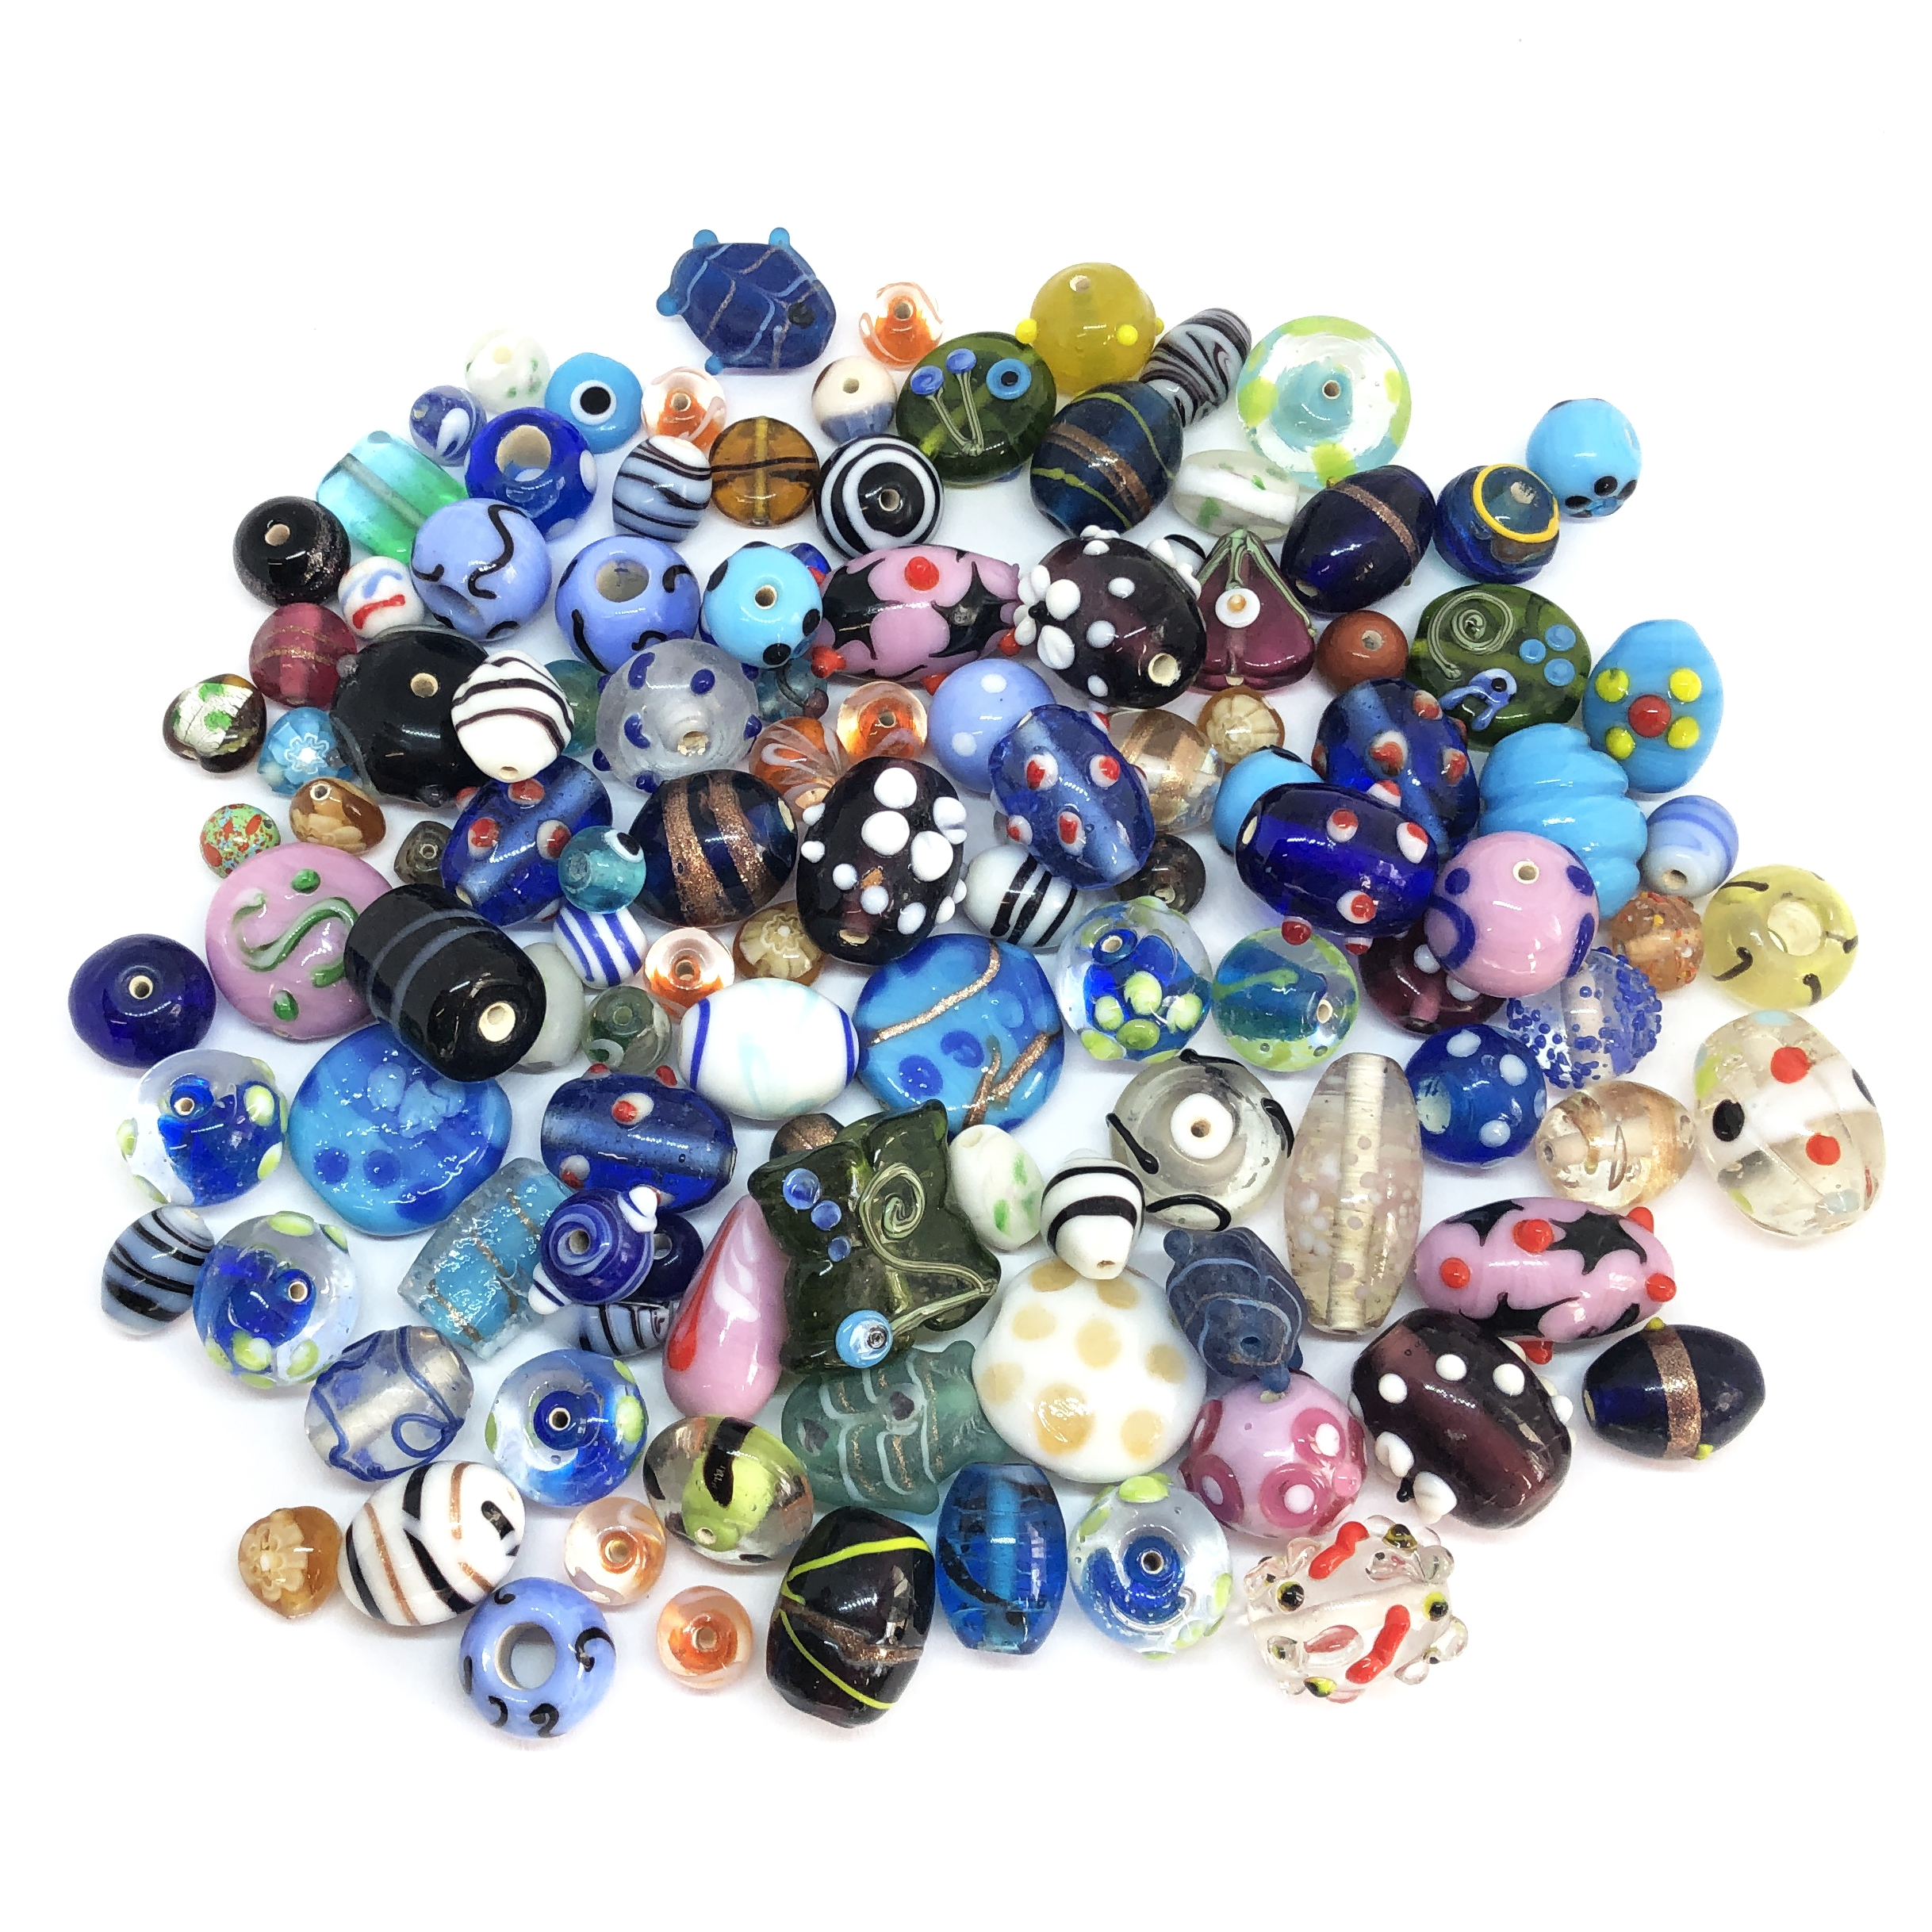 Indian glass beads, lampwork beads, glass beads, assorted glass beads, pink lampwork beads, wedding cake beads, cake beads, lamp beads, handmade beads, beading supplies, jewelry making supplies, B'sue Boutiques, beading supplies, 0417